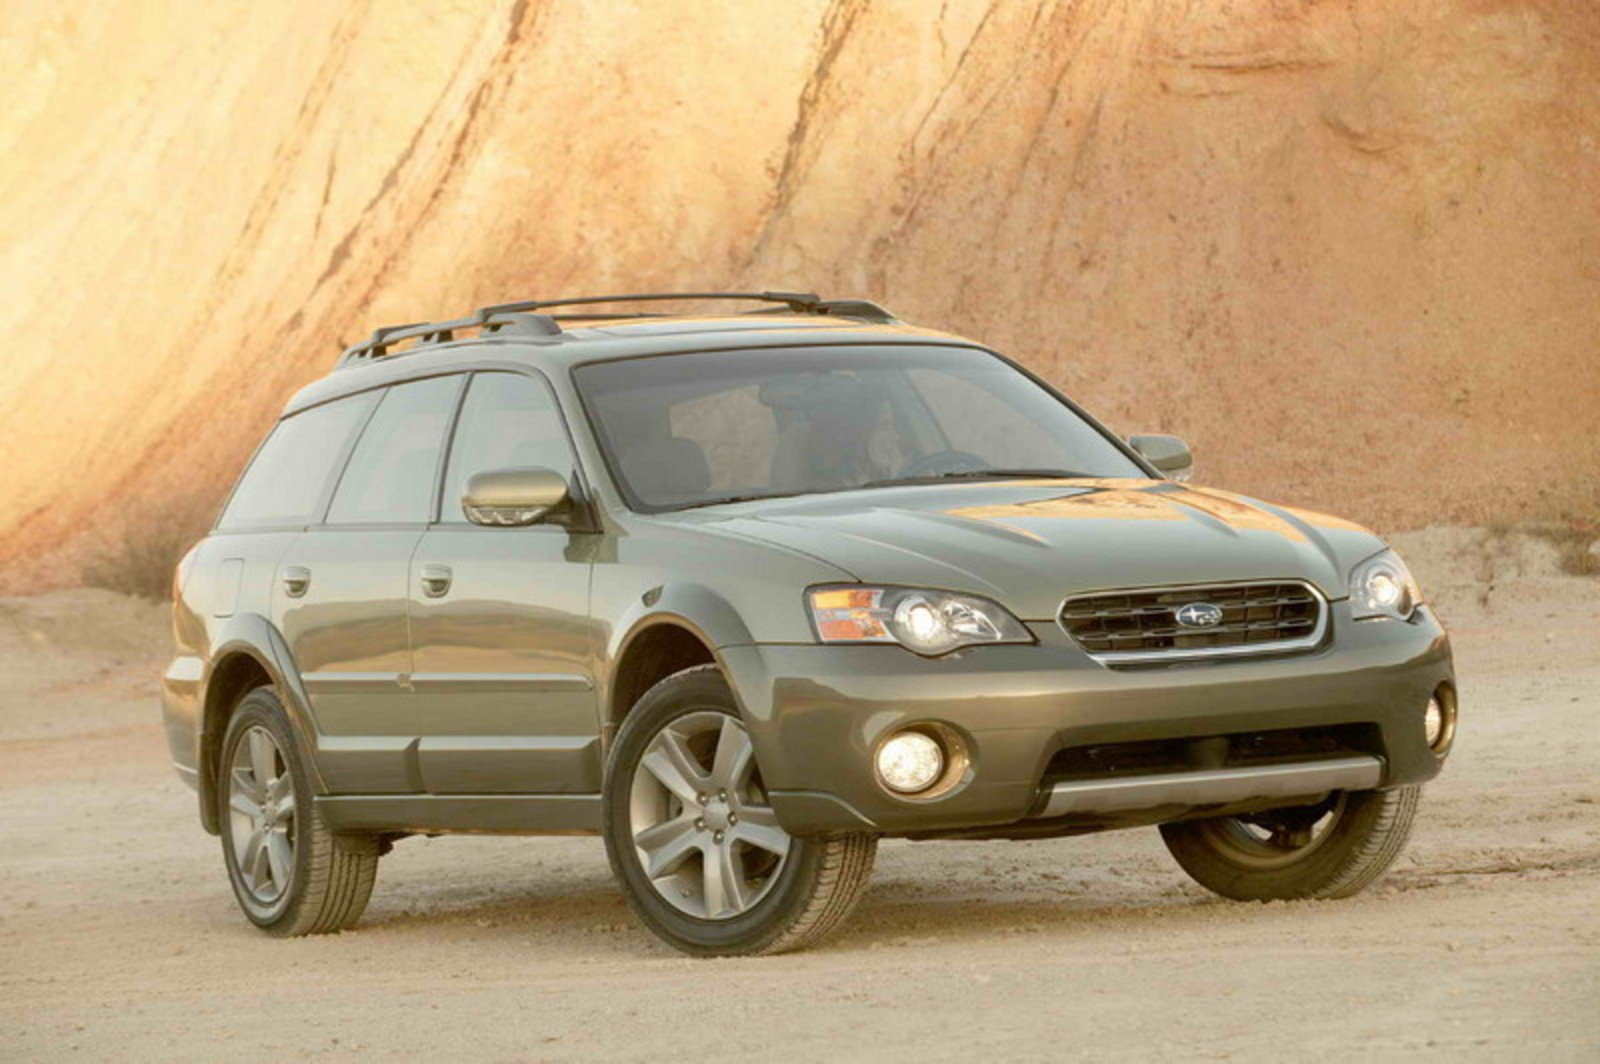 2006 subaru outback picture 44229 car review top speed. Black Bedroom Furniture Sets. Home Design Ideas